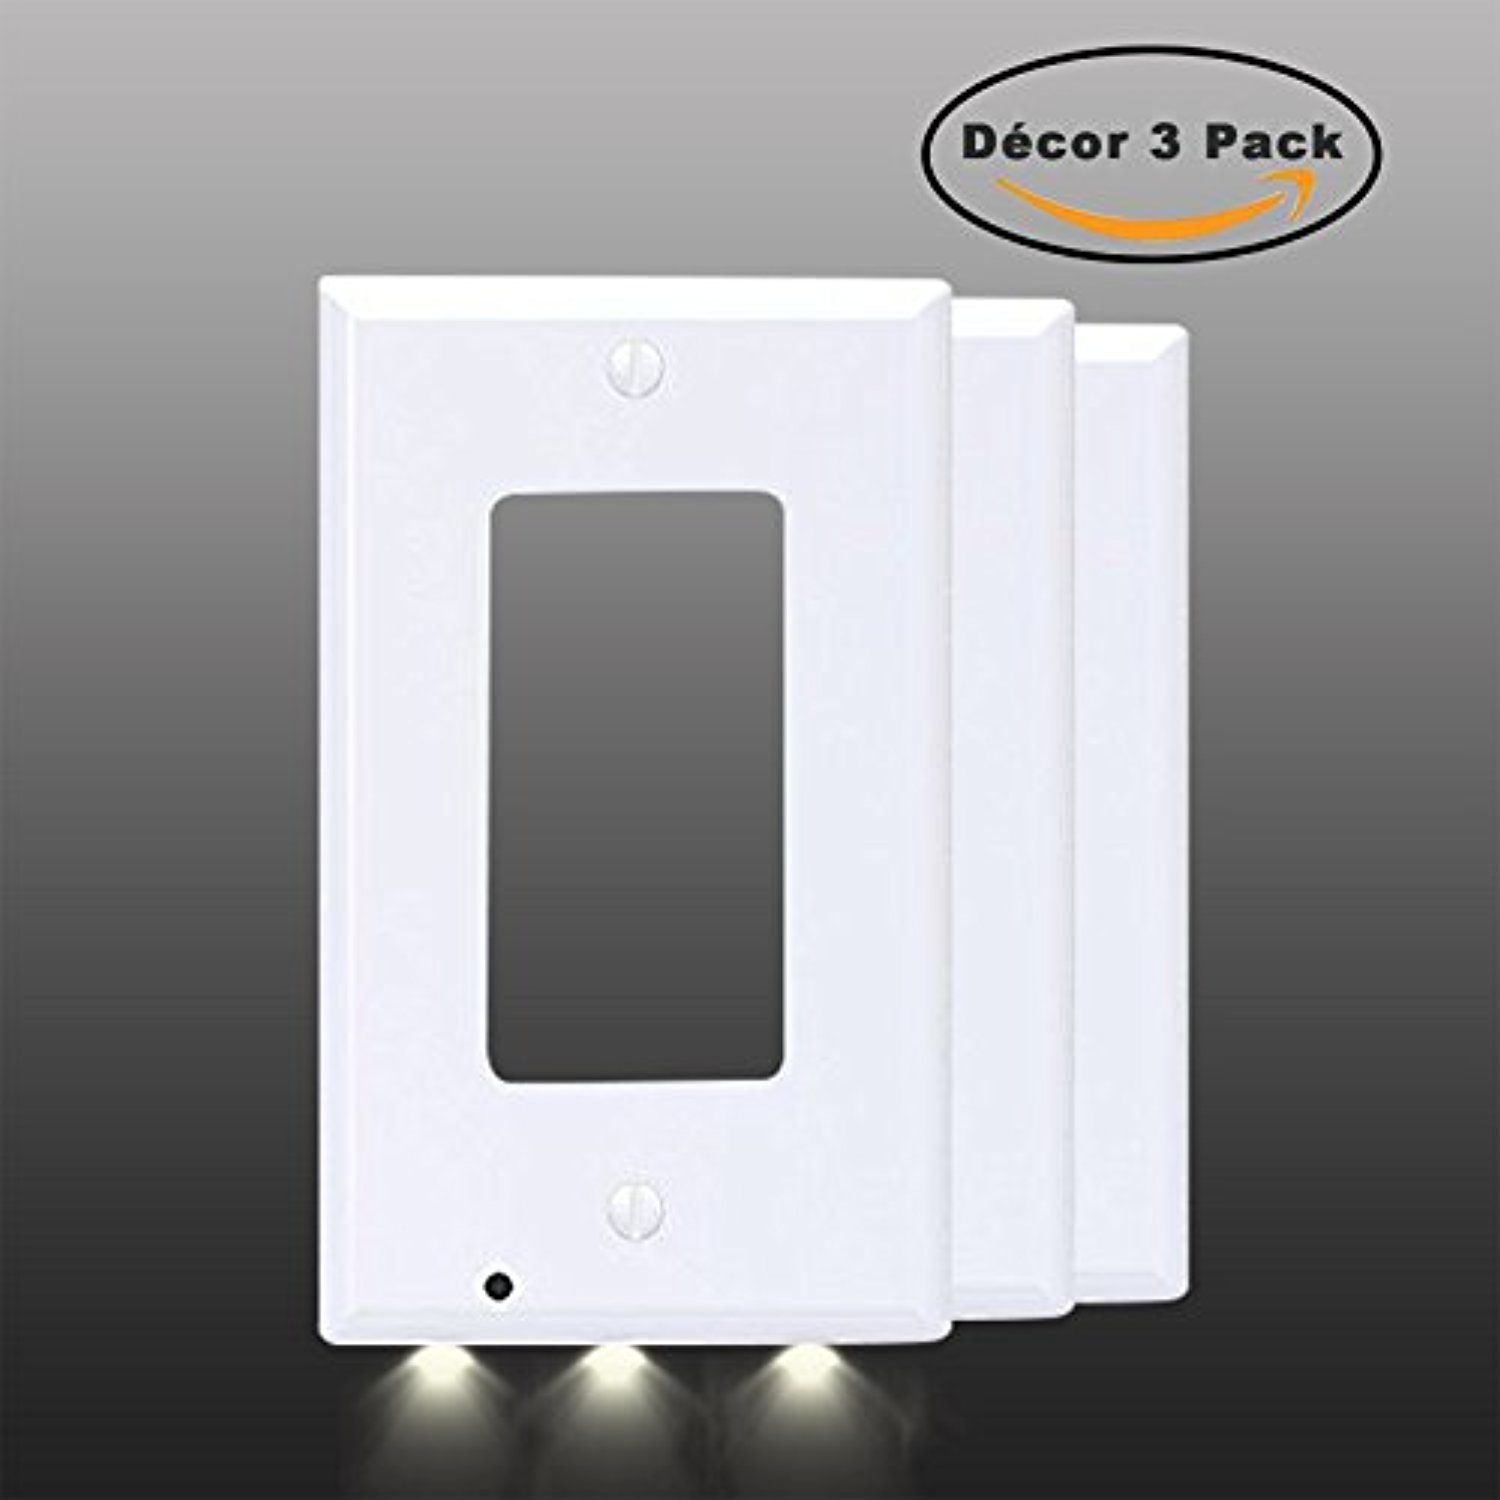 Exgreem Guidelight Best Energy Saving Led Night Lights Wall Outlet Nightlight And Switch Wiring Cover Fireproof Material No Batteries Or Wires White Dcor 3 Pack Check This